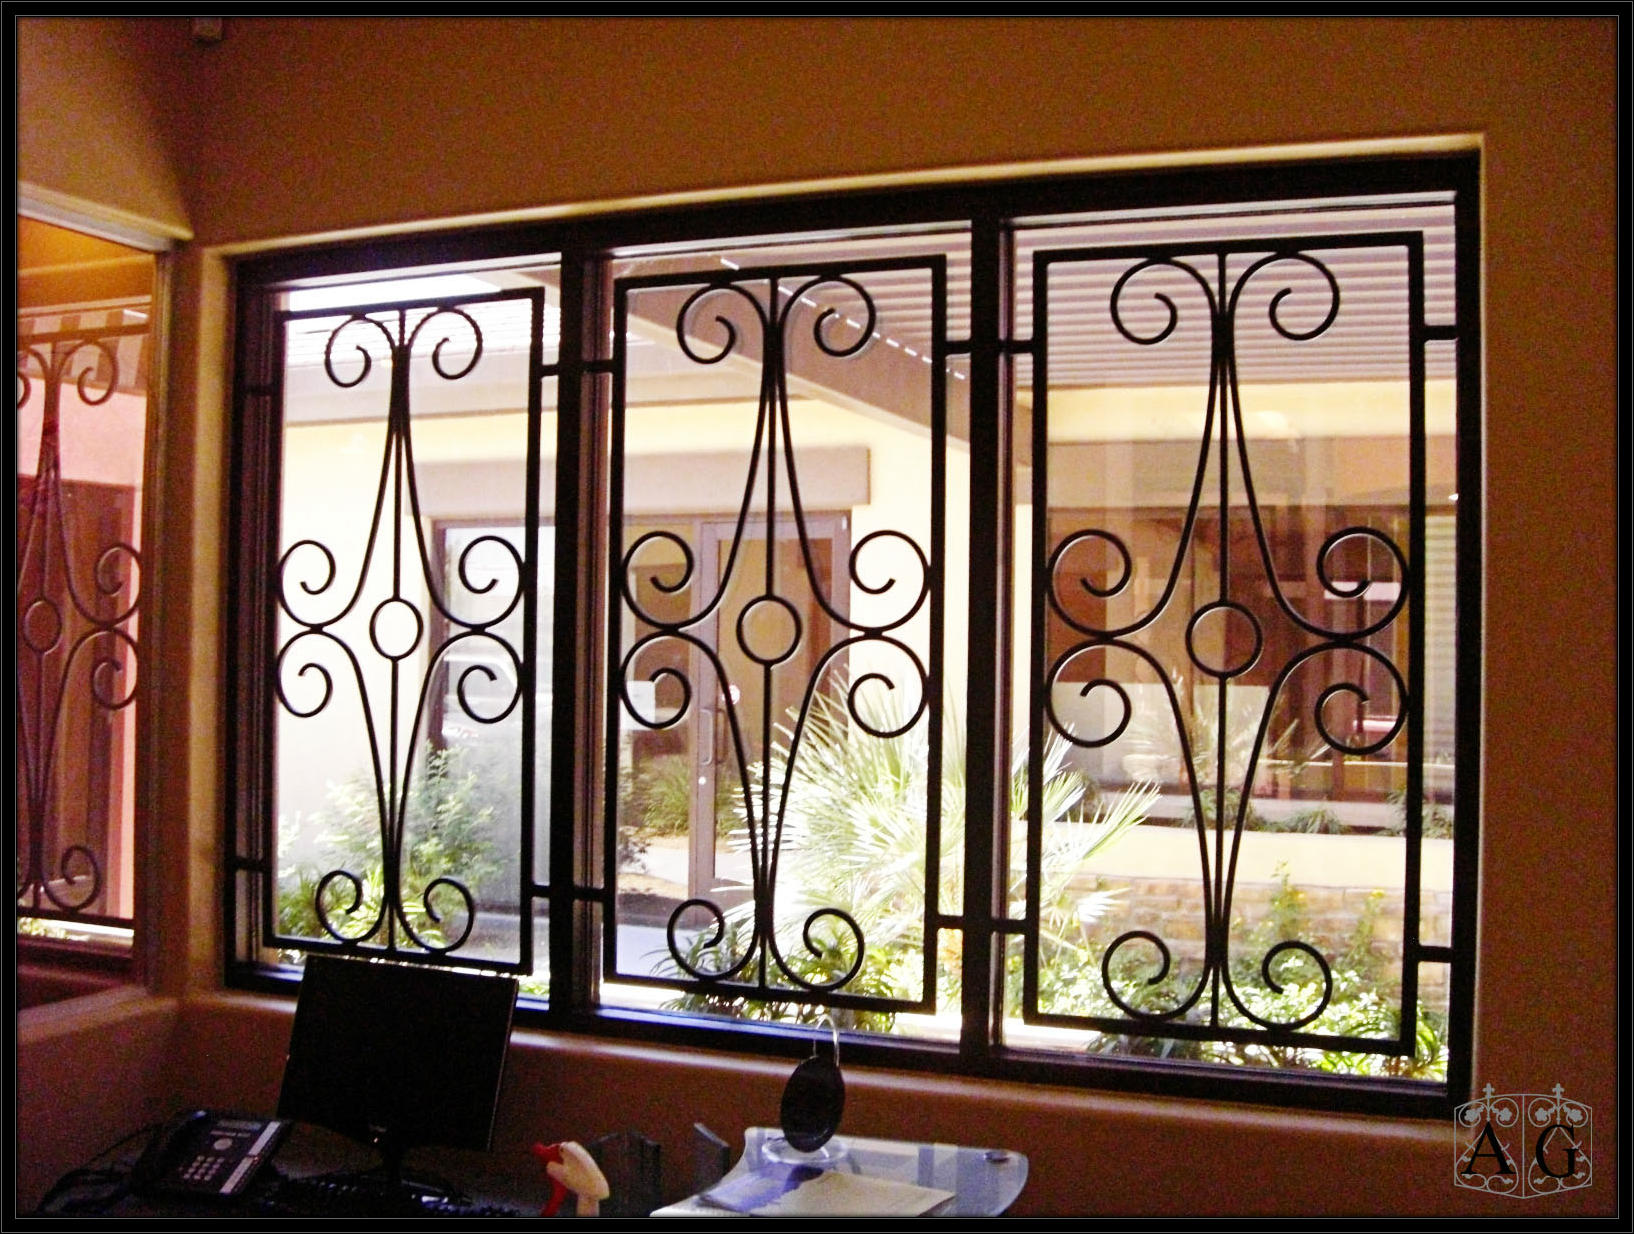 Decorative Burglar Bars For Windows